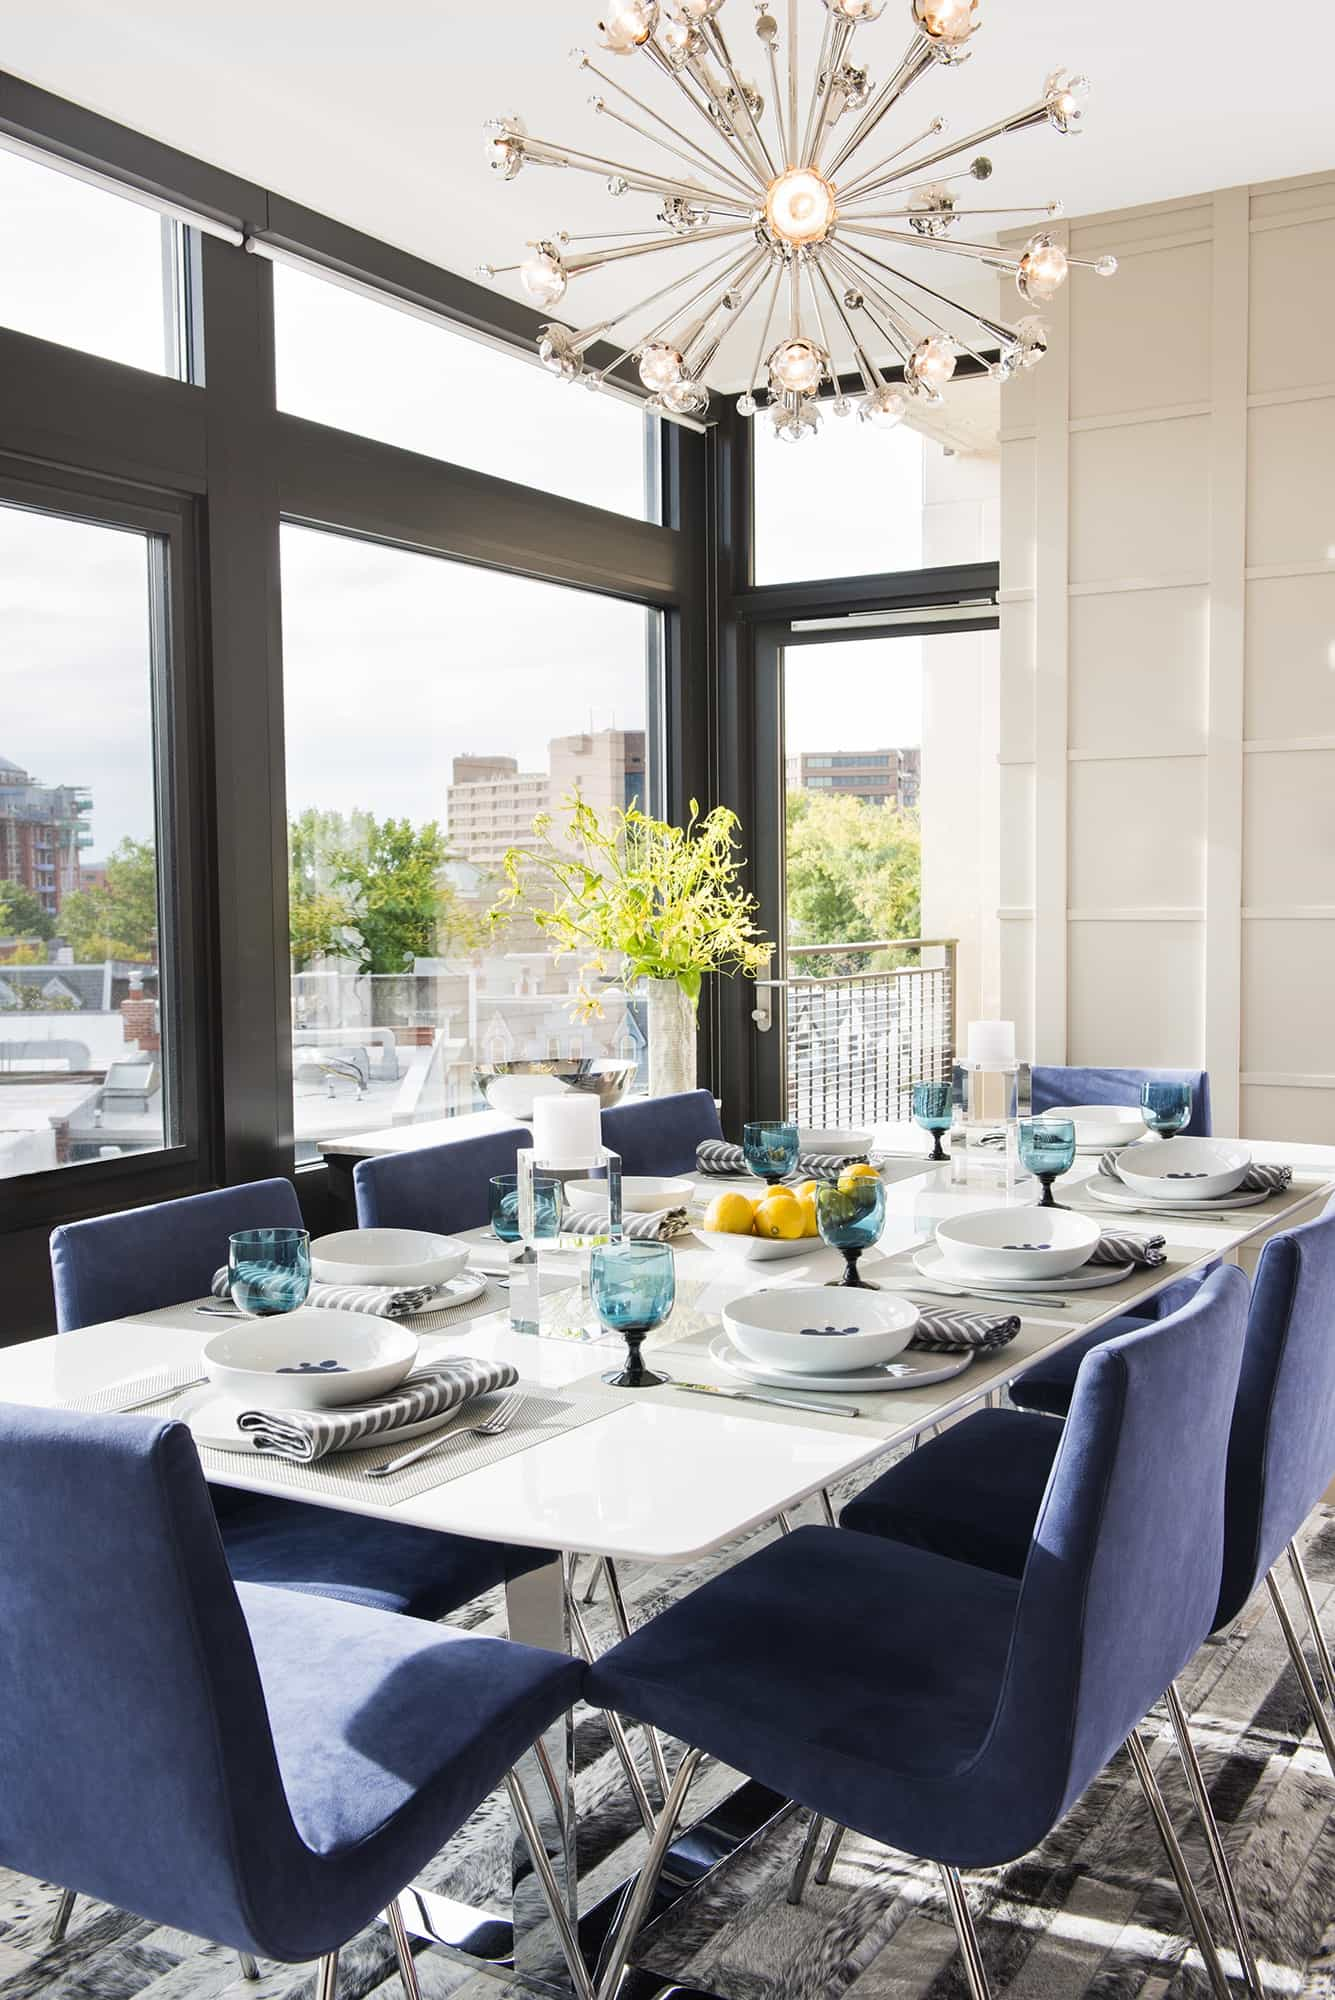 Featured Image of Modern Bold Blue Chairs For Stylish Art Deco Dining Room